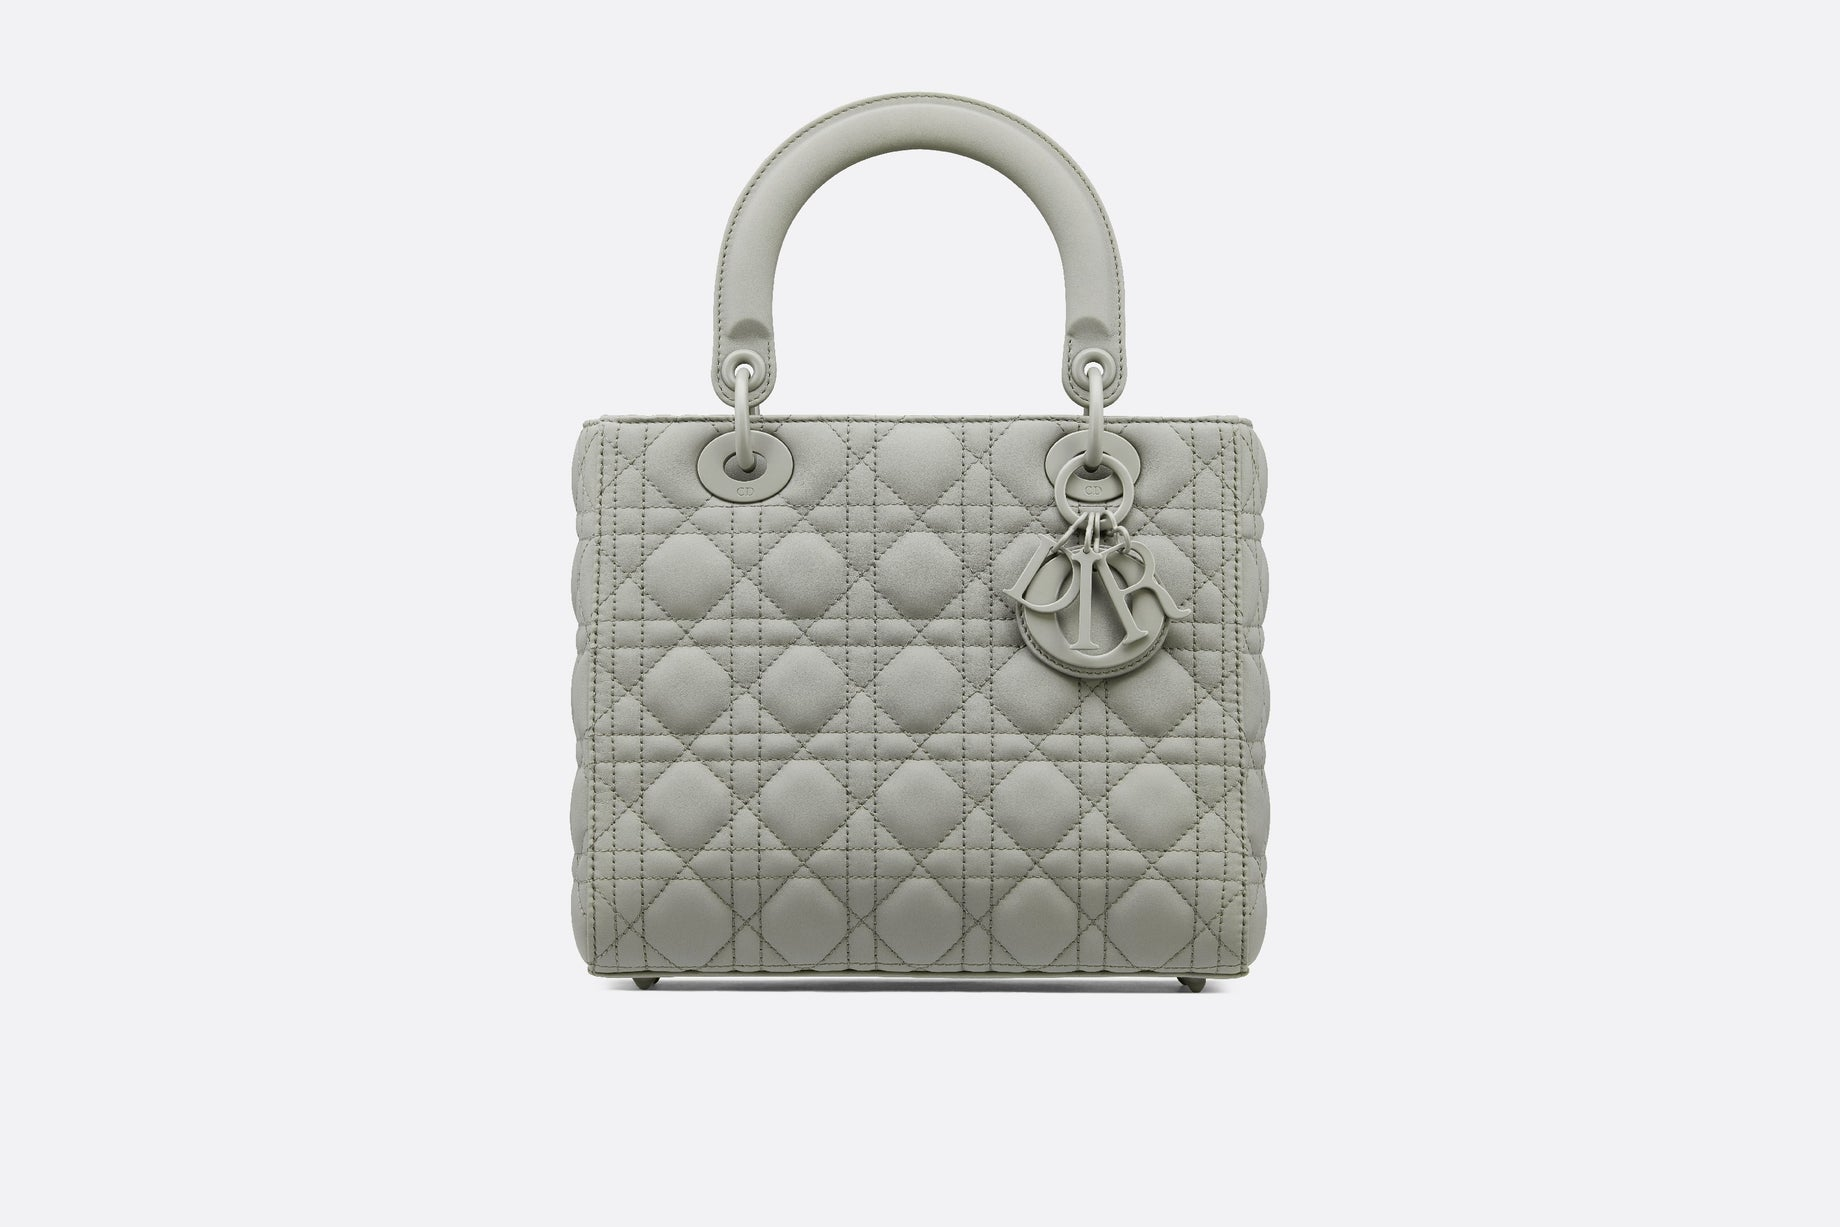 Medium Lady Dior Bag • Metallic Gray Cannage Calfskin